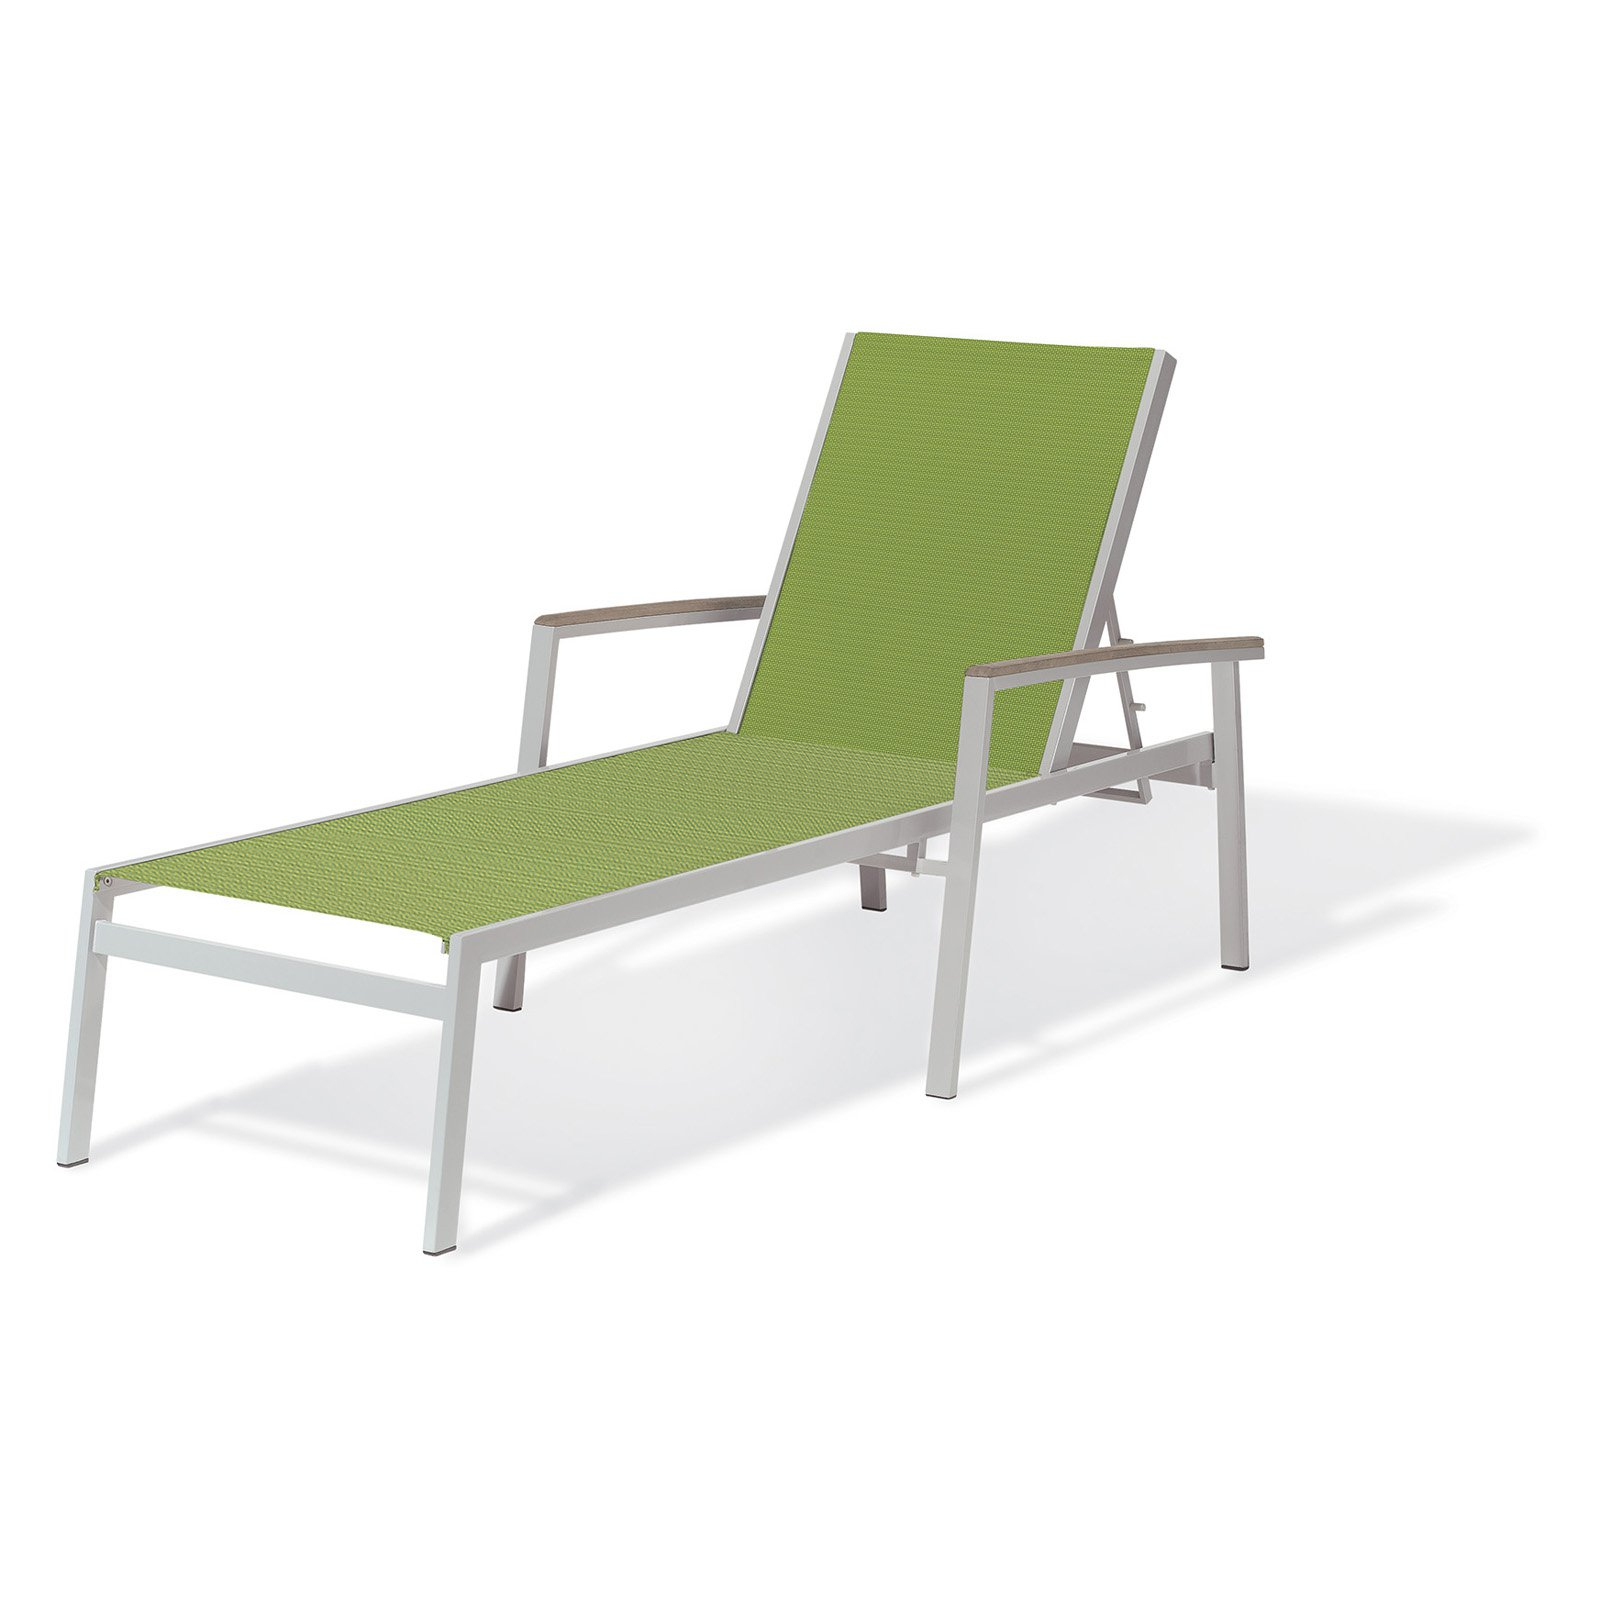 Shore Aluminum Outdoor Chaise Lounges Pertaining To Fashionable Oxford Garden Travira Aluminum Outdoor Chaise Lounge Go (View 13 of 25)